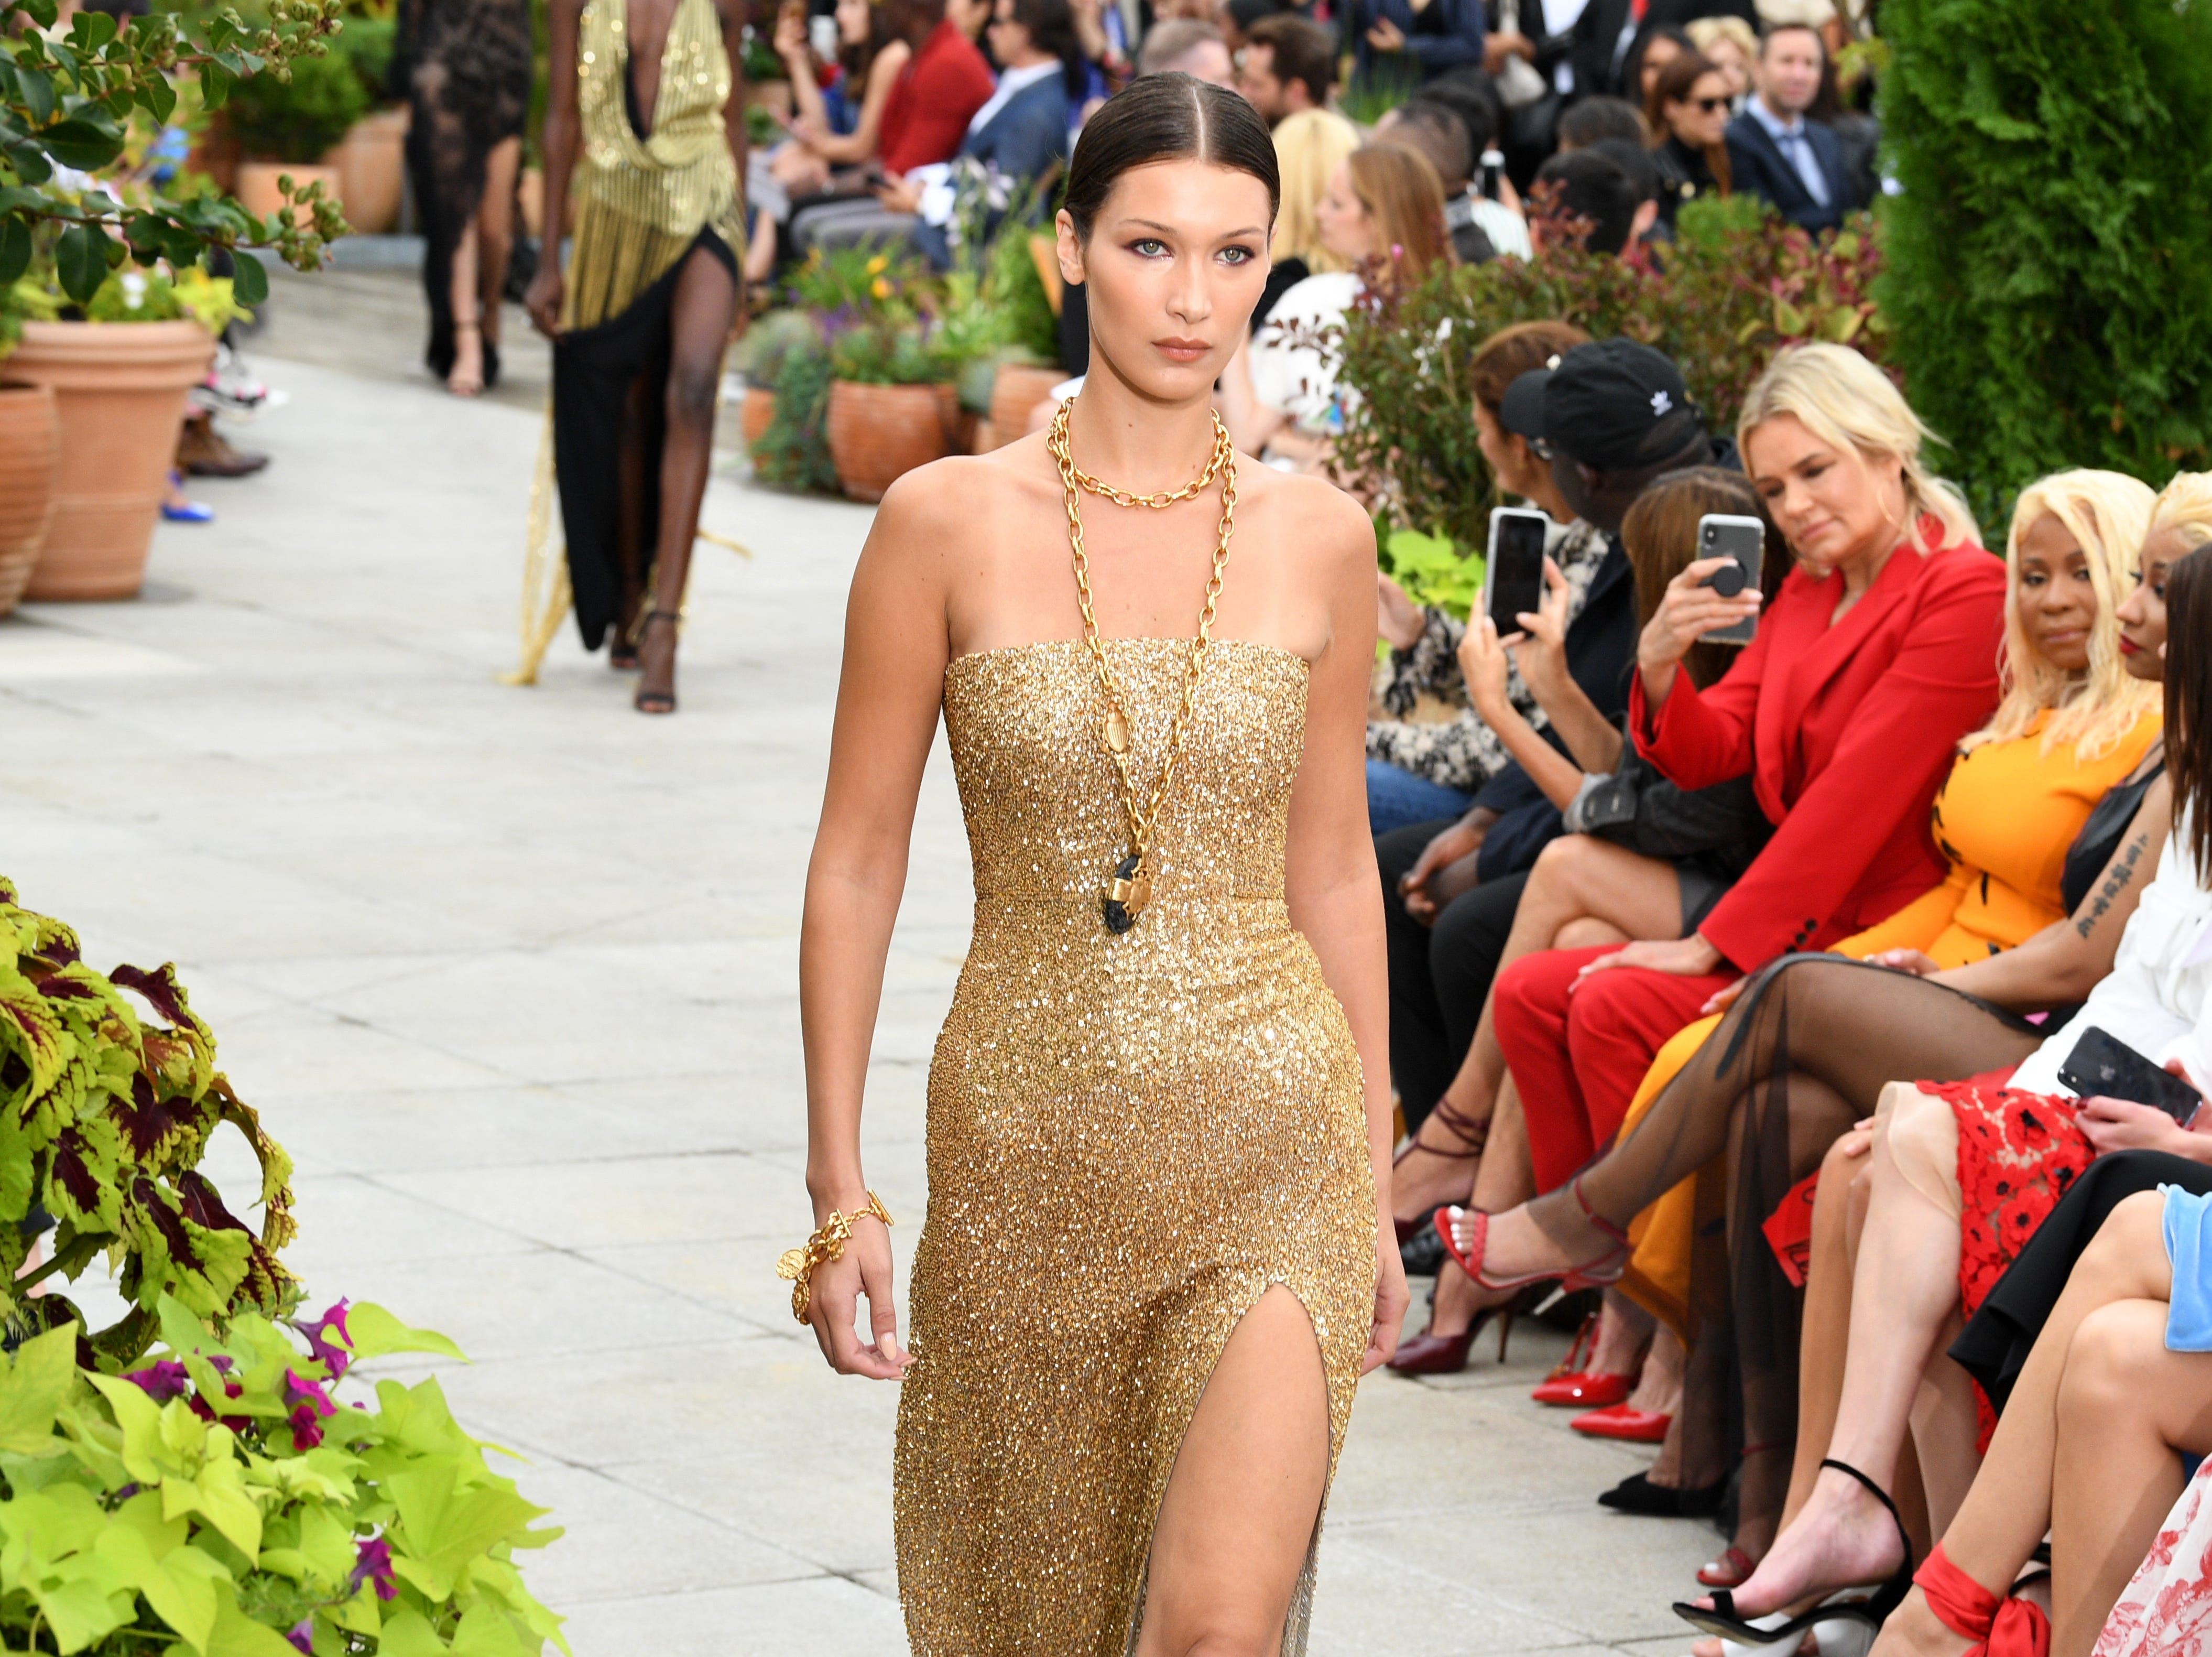 New York Fashion Week continues! Day 7 brought bold, glamorous looks from Oscar De La Renta. Here, Bella Hadid walks the runway in a golden gown Tuesday.